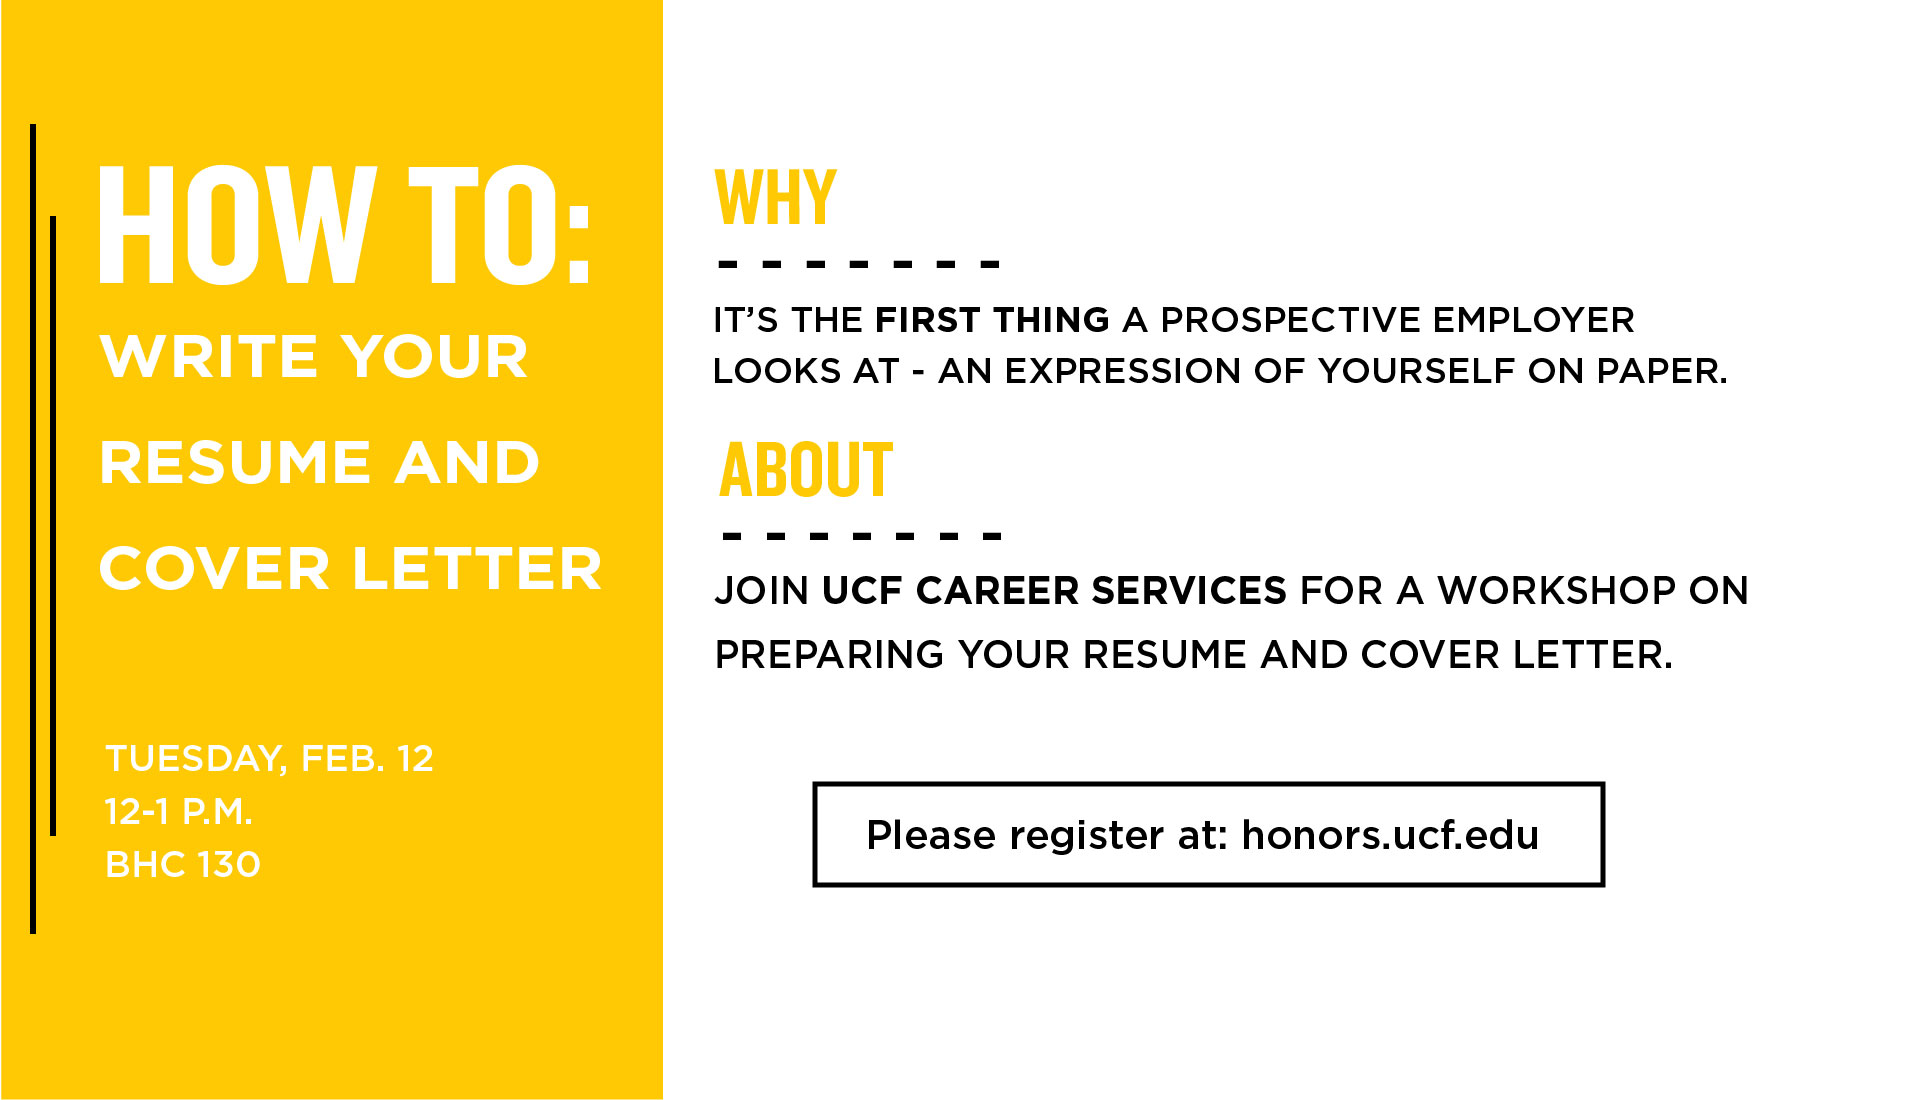 How To Write Your Resume And Cover Letter